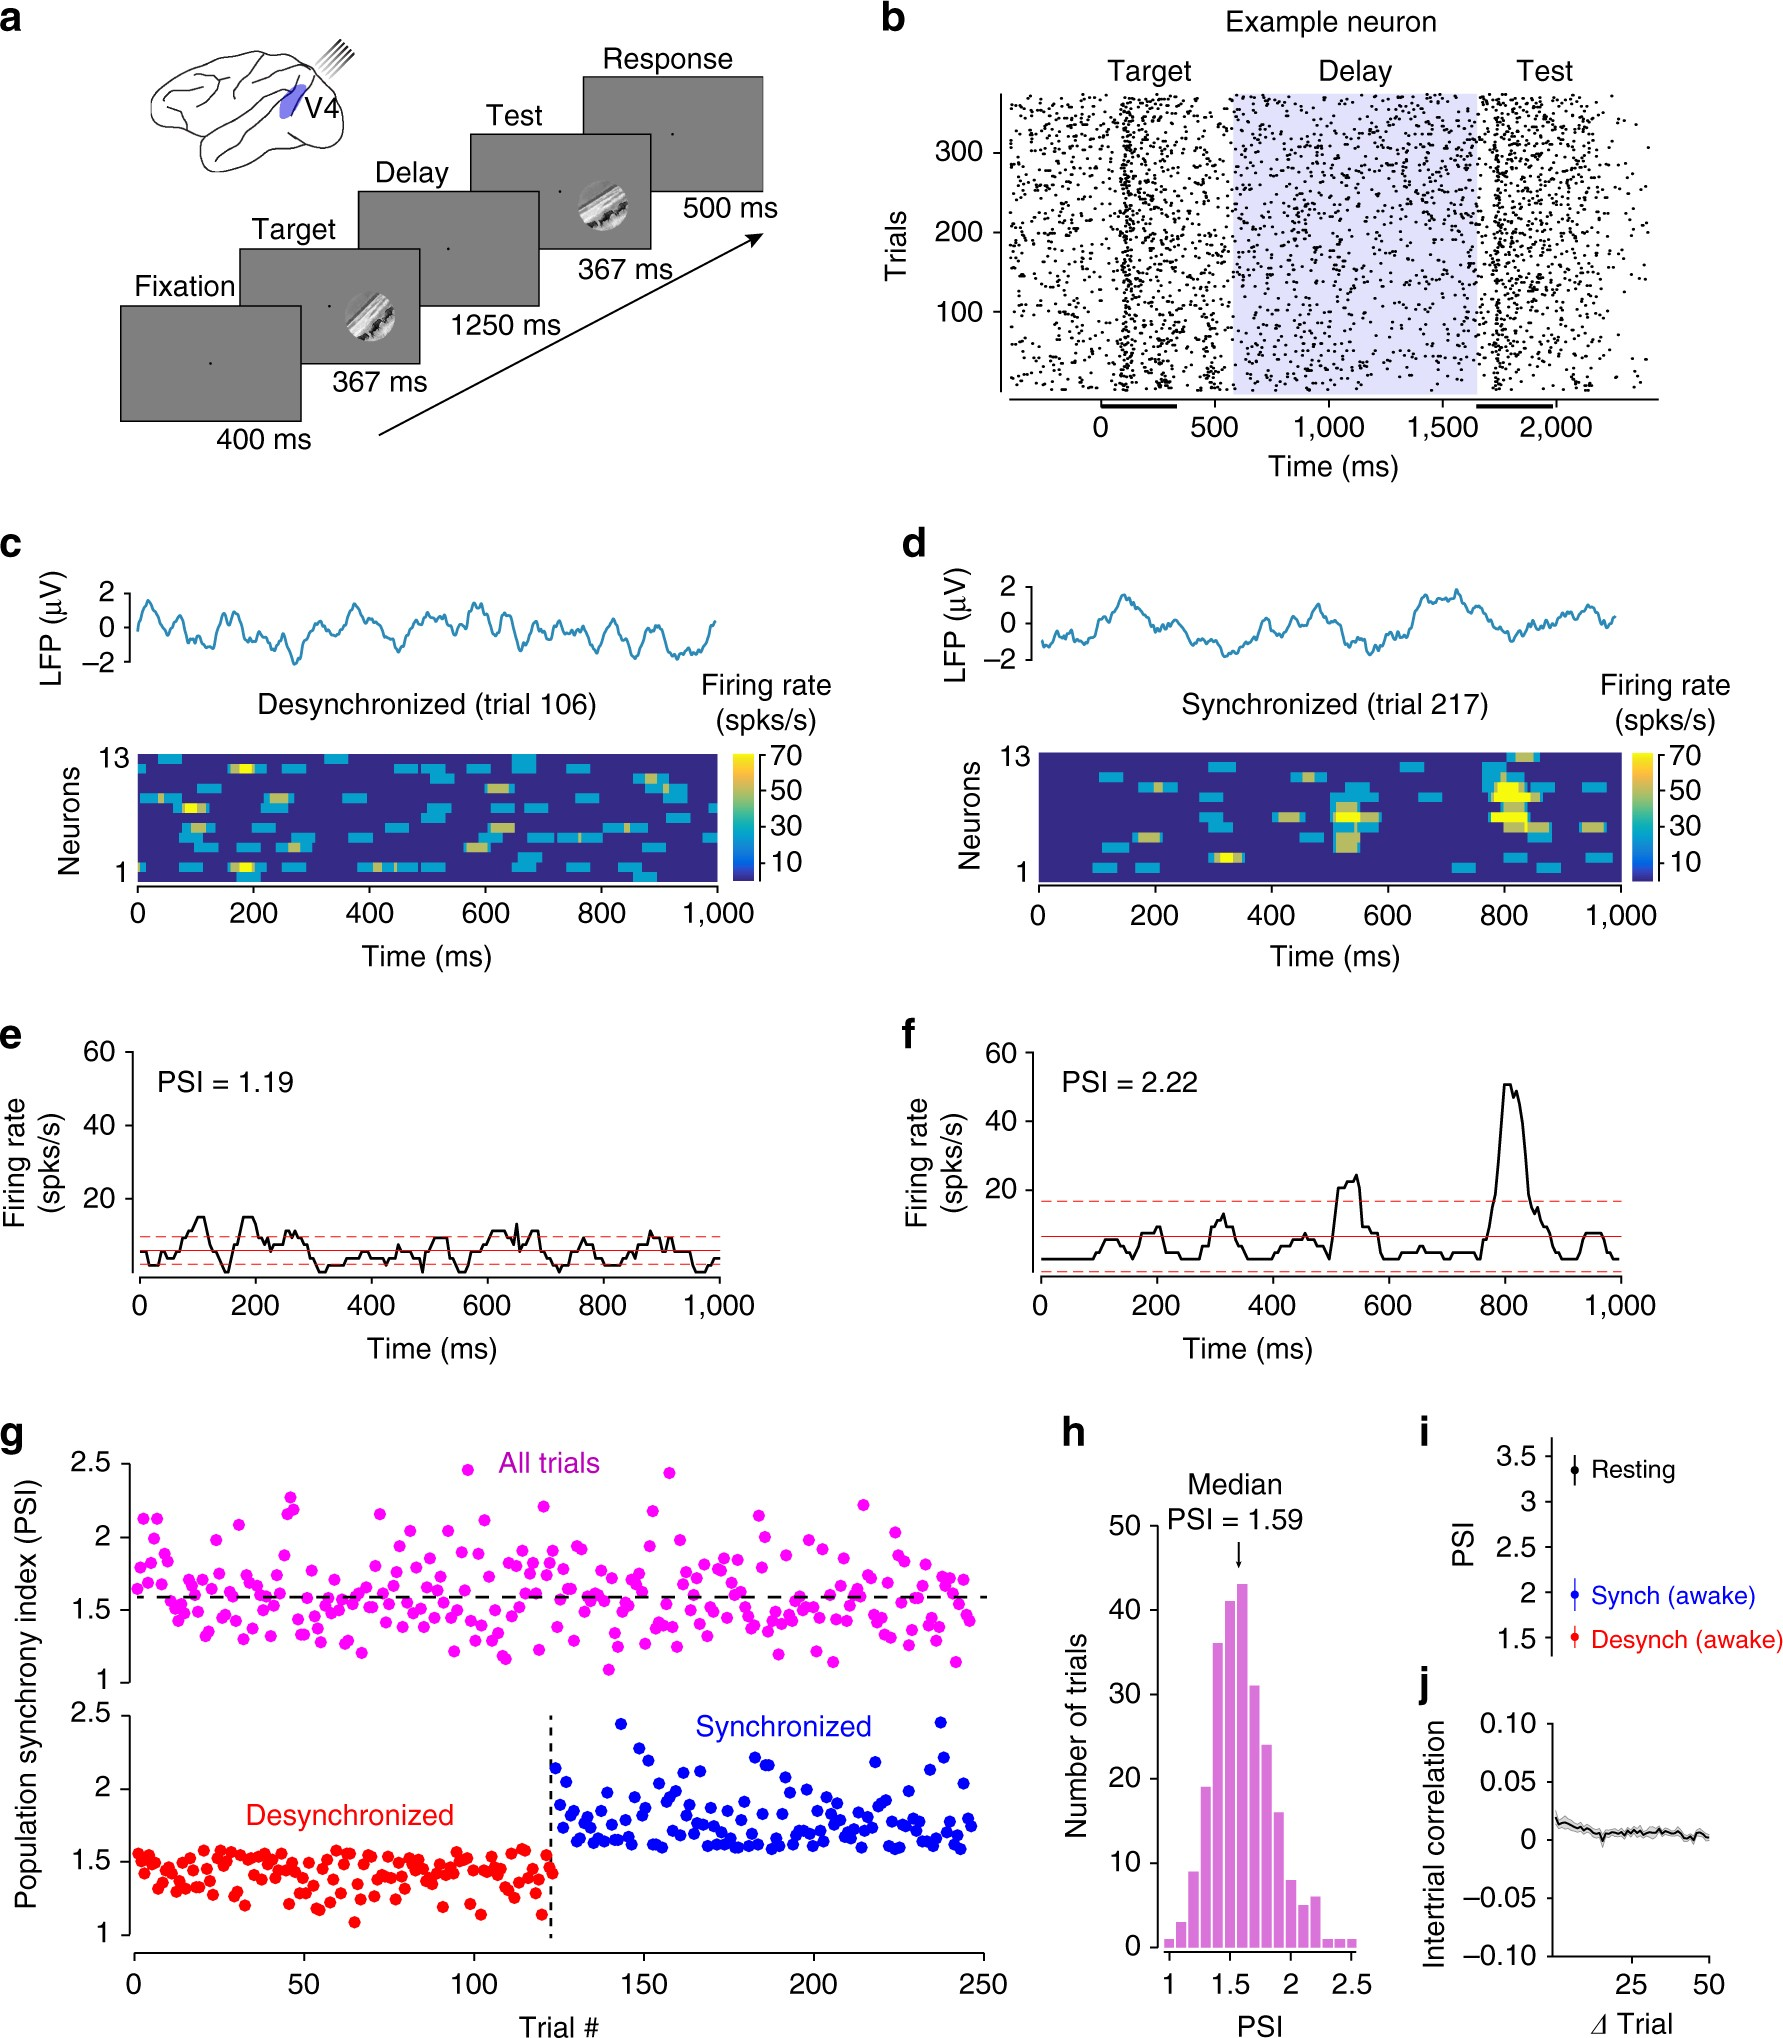 Sensory Coding Accuracy And Perceptual Performance Are Improved 99 Electronic Toolbox 10 Combines During The Desynchronized Cortical State Nature Communications